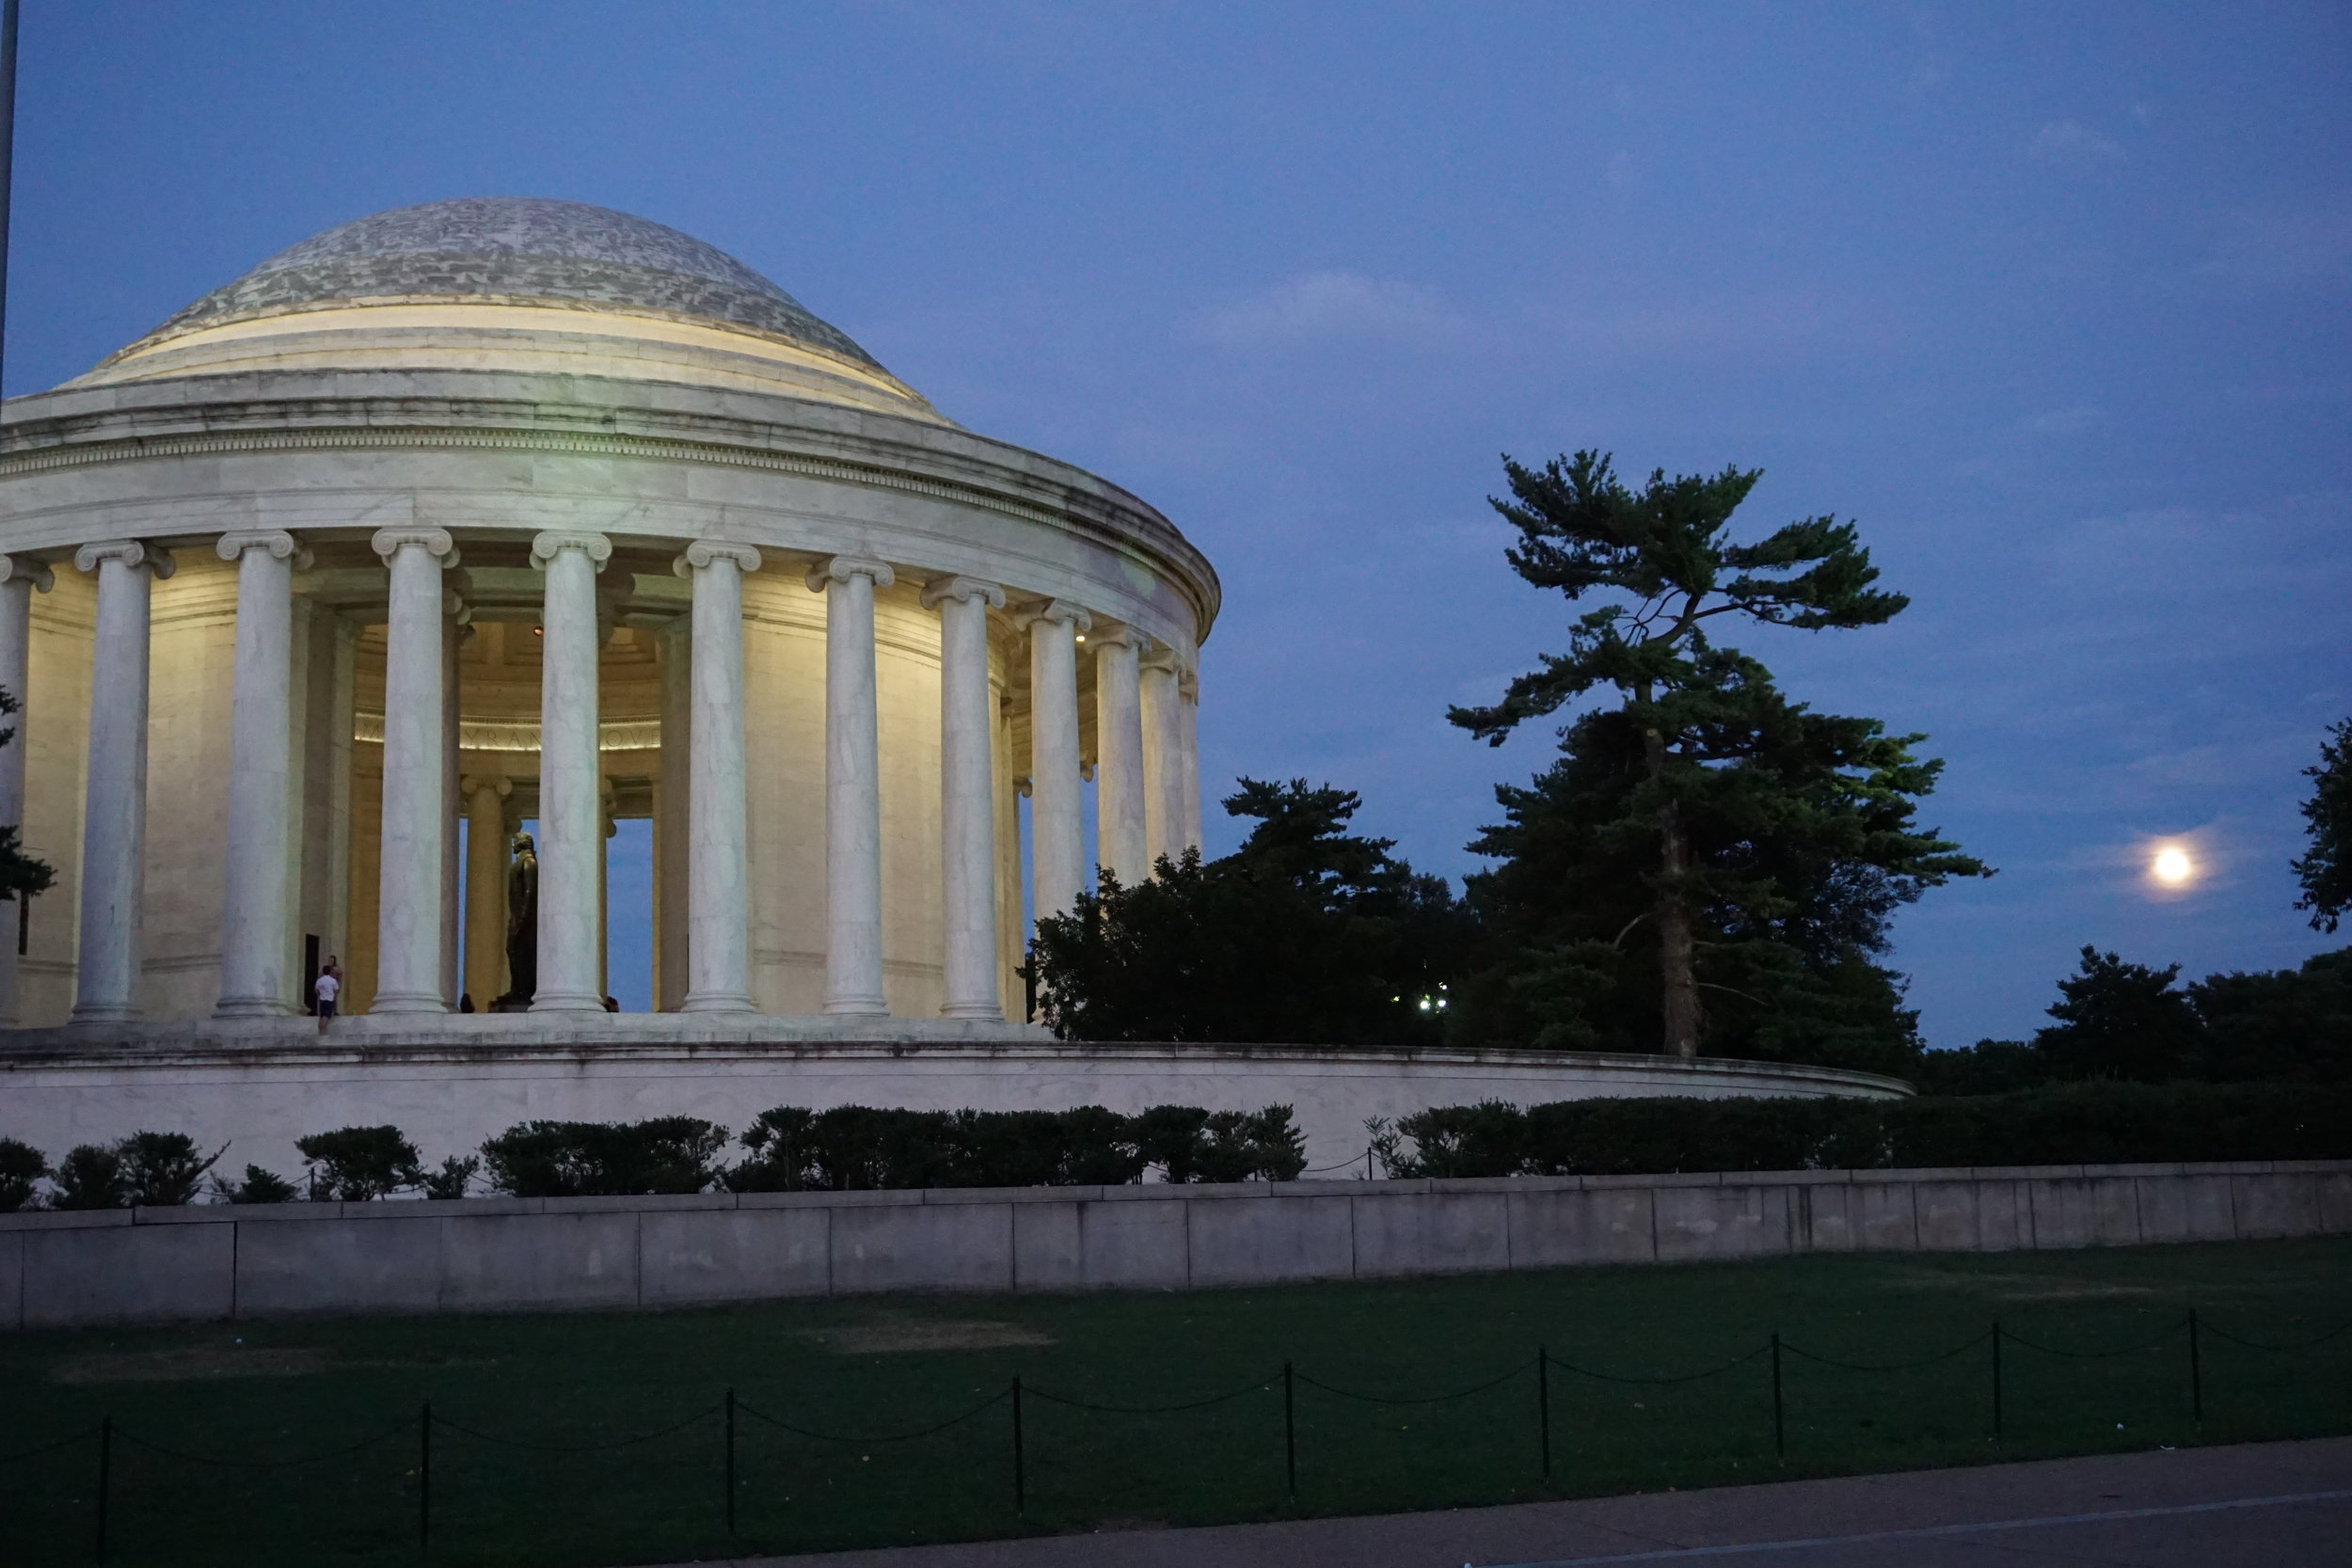 Jefferson Memorial at dusk, Washington DC